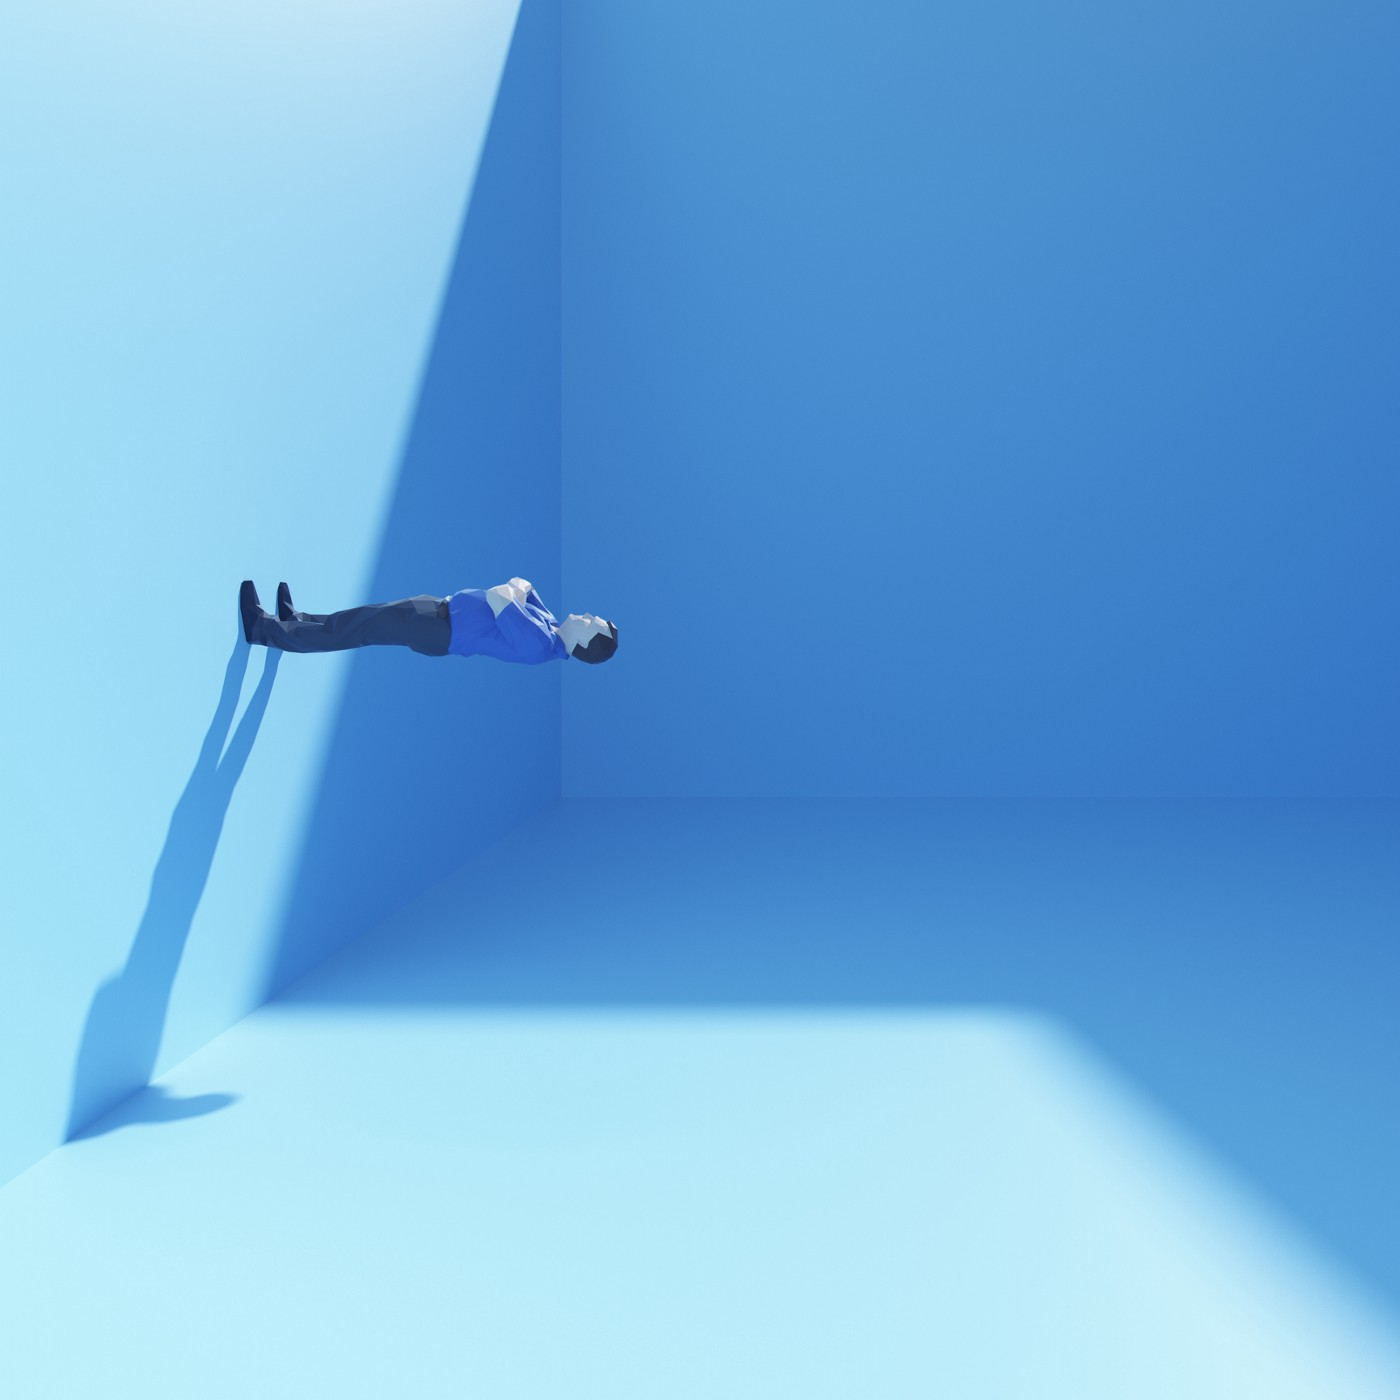 Surreal man standing on the wall of a blue cubic room.